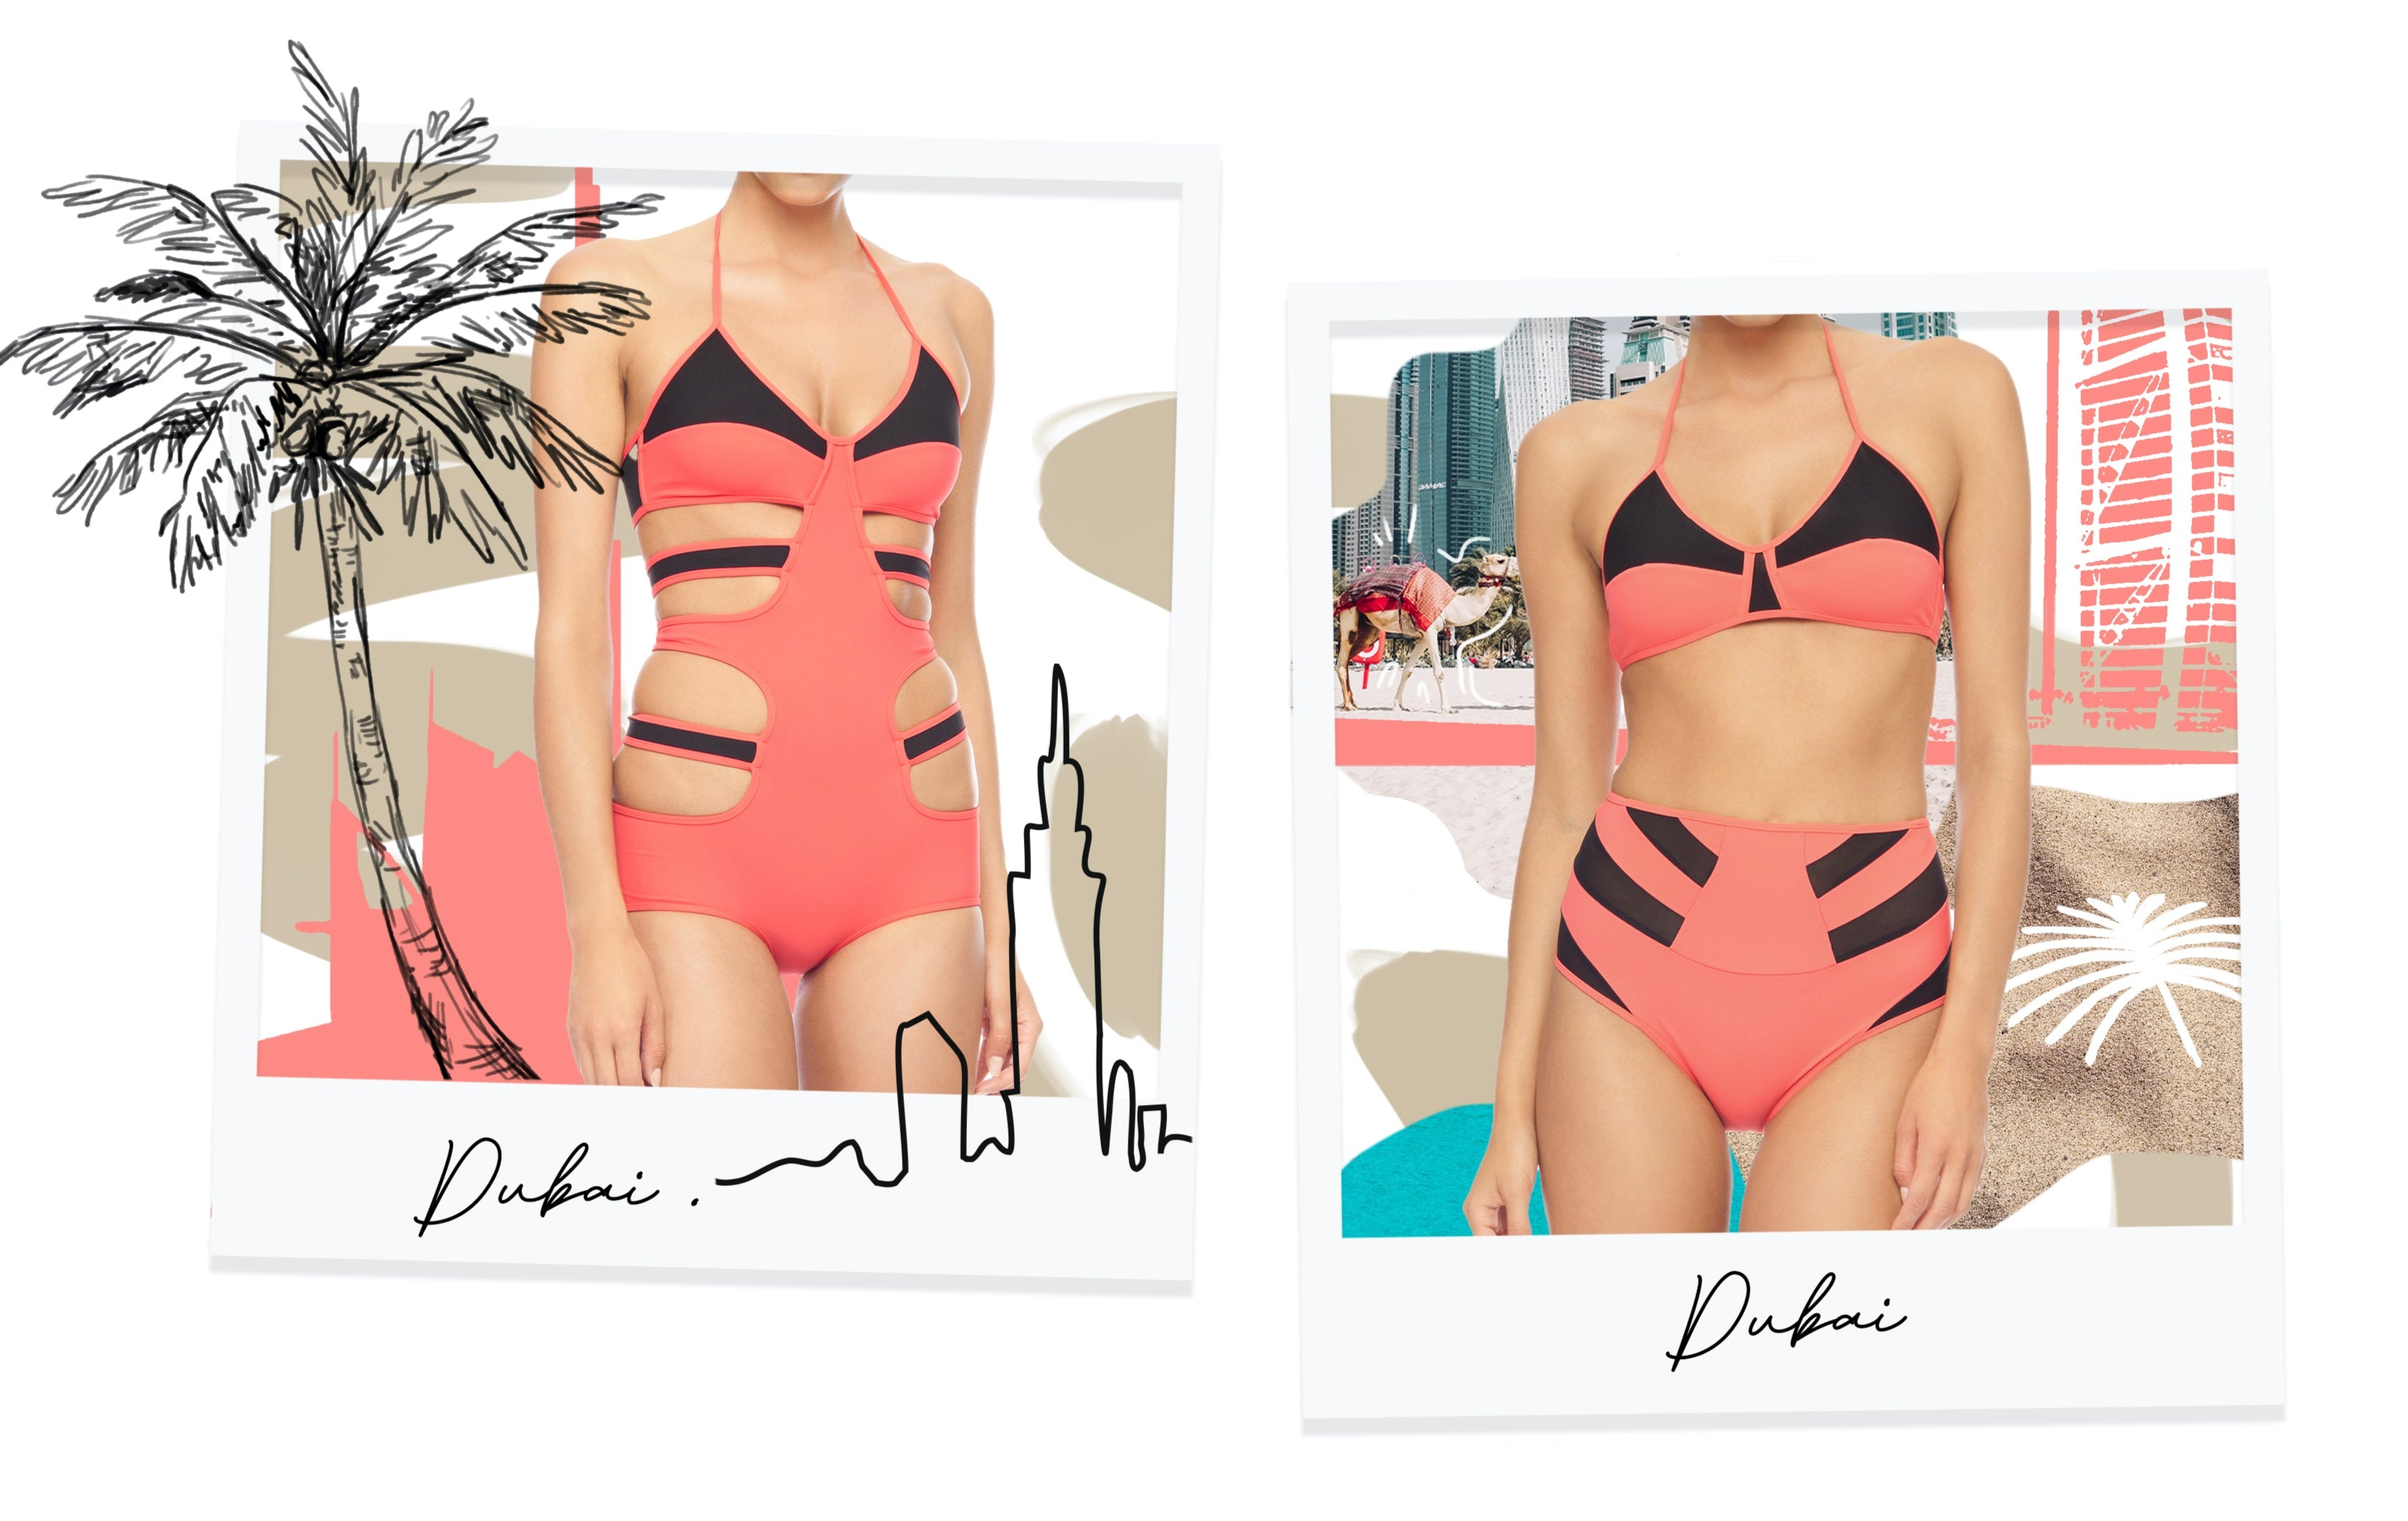 The Dubai Collection modeled on polaroids.